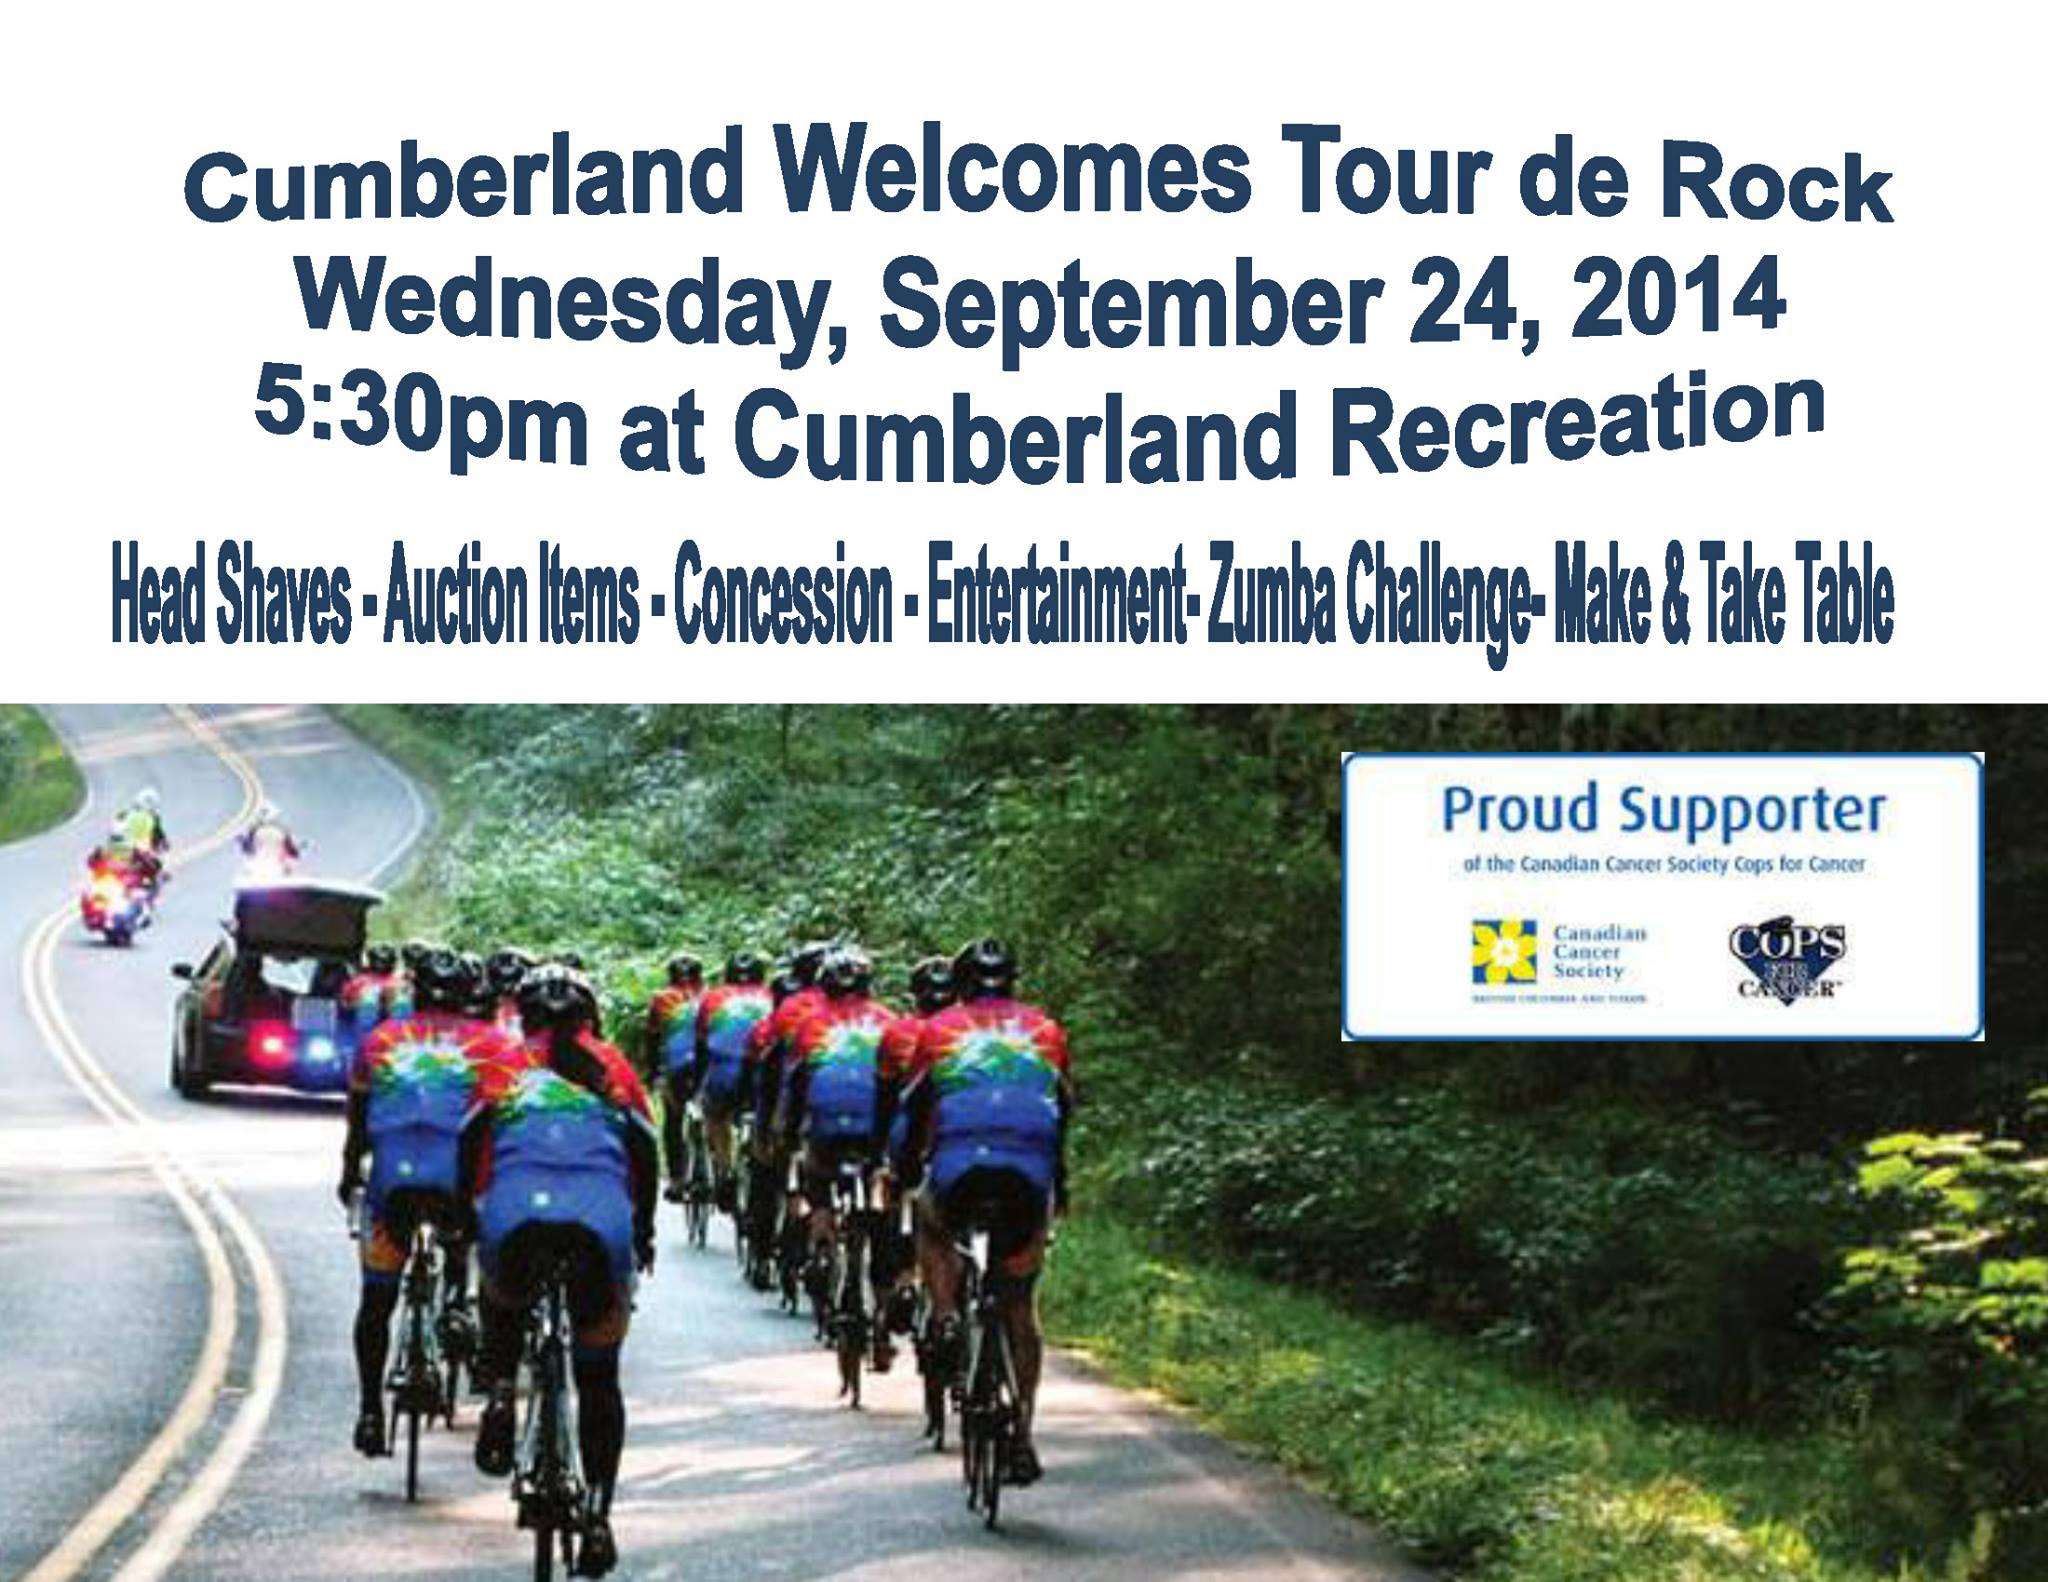 Cumberland's Tour de Rock - There will be games, a concession, auction and head shaves. Please come out to this community event to support such a great cause for children | Currently Cumberland